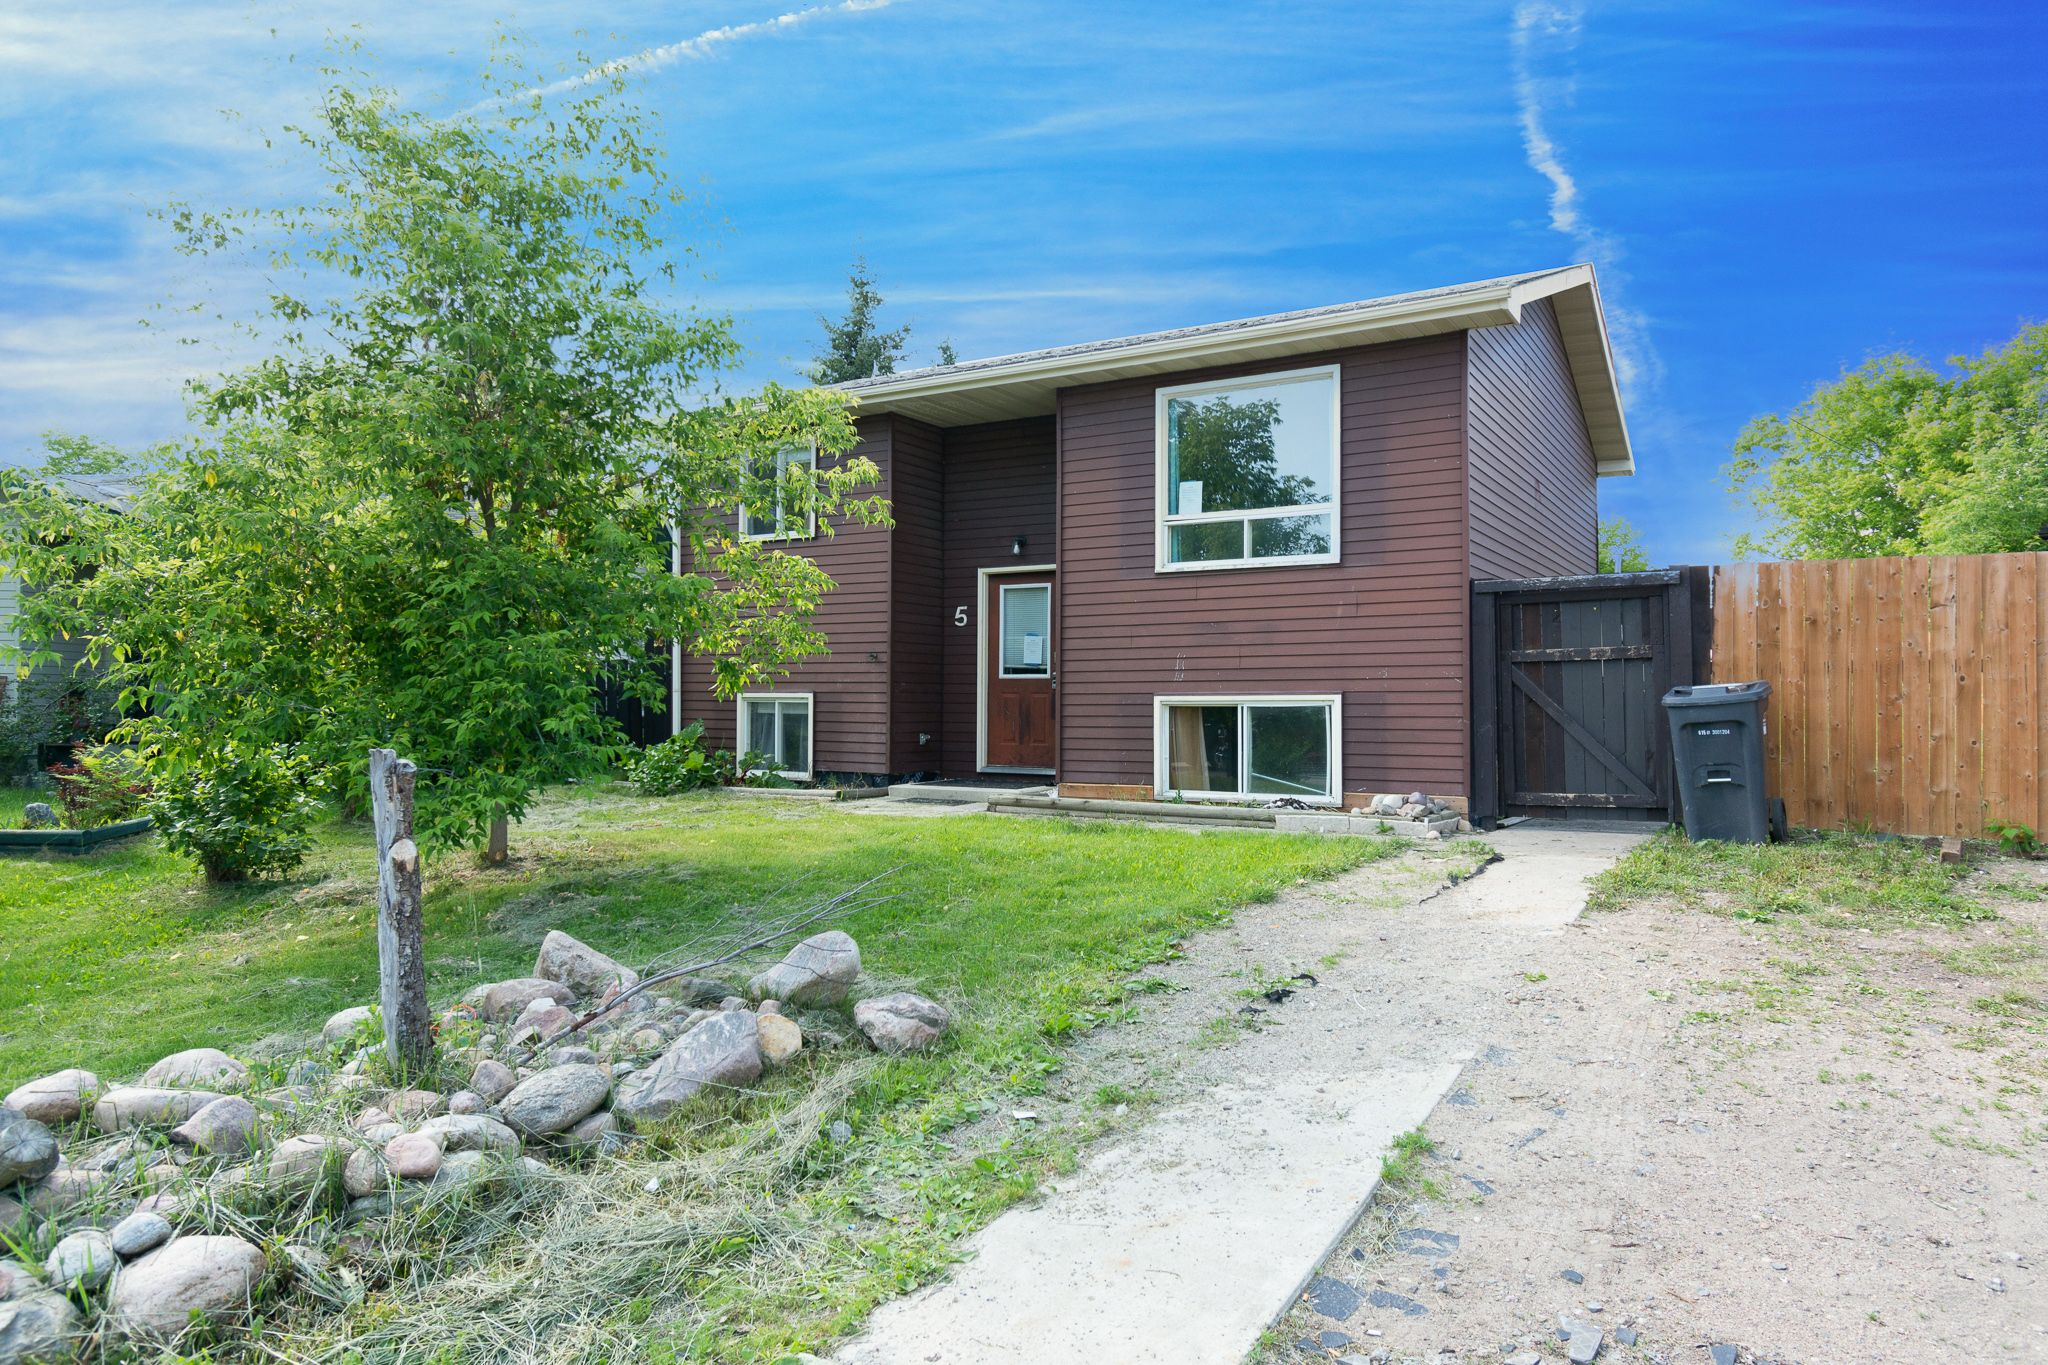 Main Photo: 5 Forest Place SE: Cold Lake House for sale : MLS®# E4251600